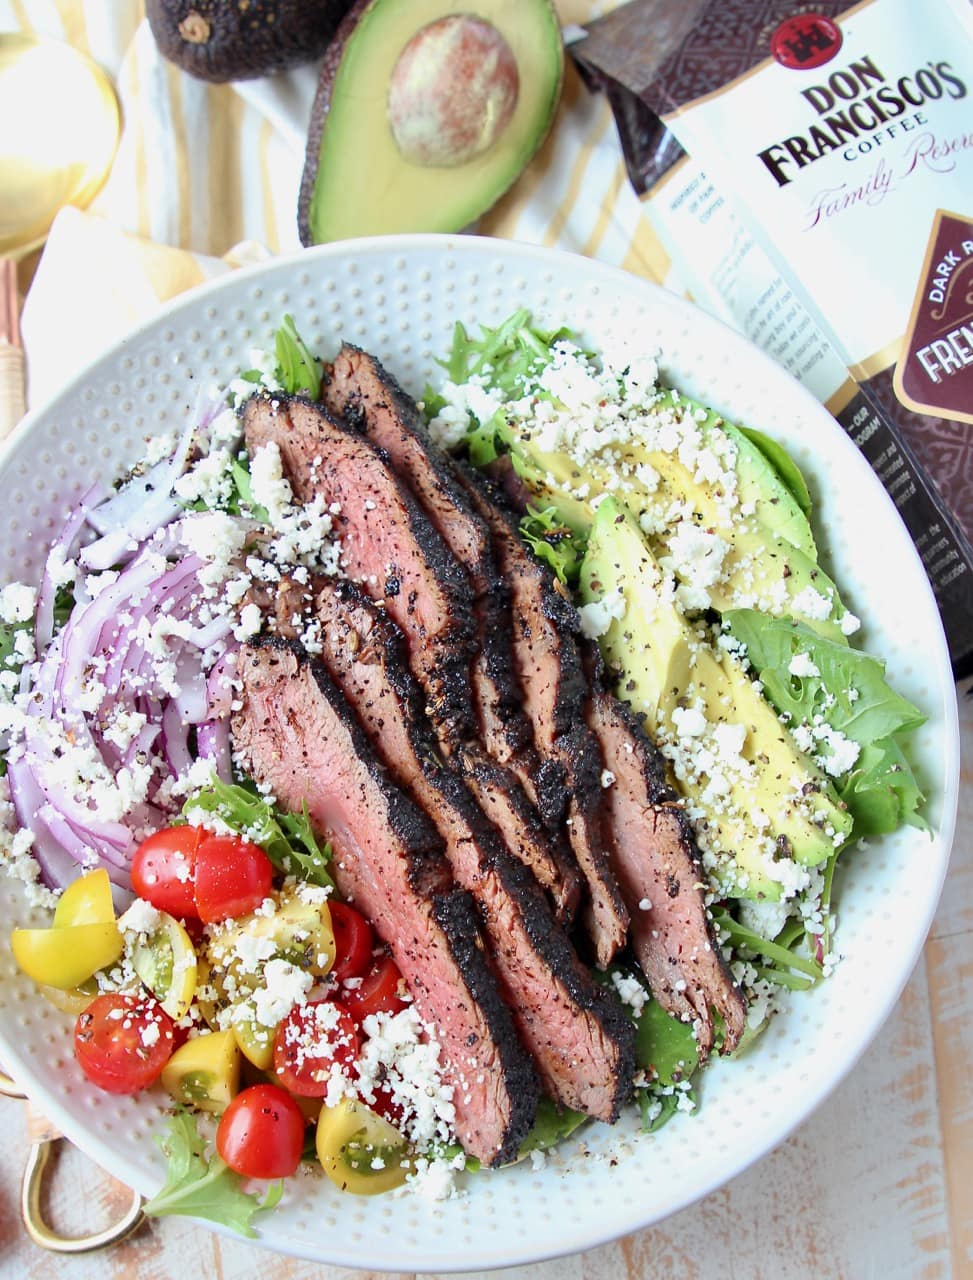 Steak salad in white bowl with bag of coffee and half an avocado on the side